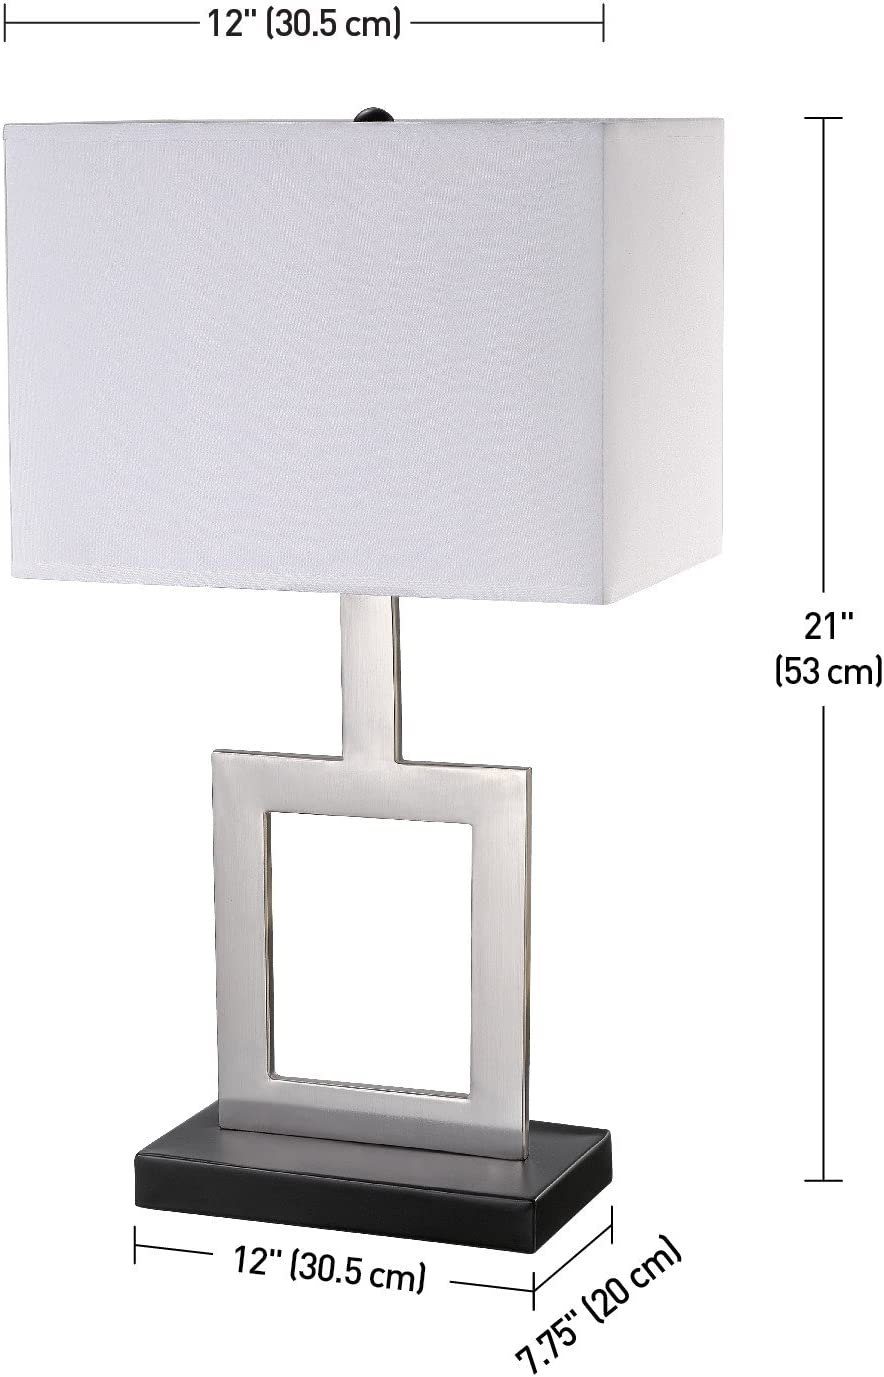 Haven 21 Table Lamp Brushed Nickel Finish Black Base White Shade In Line On Off Rocker Switch 11388 Amazon Com